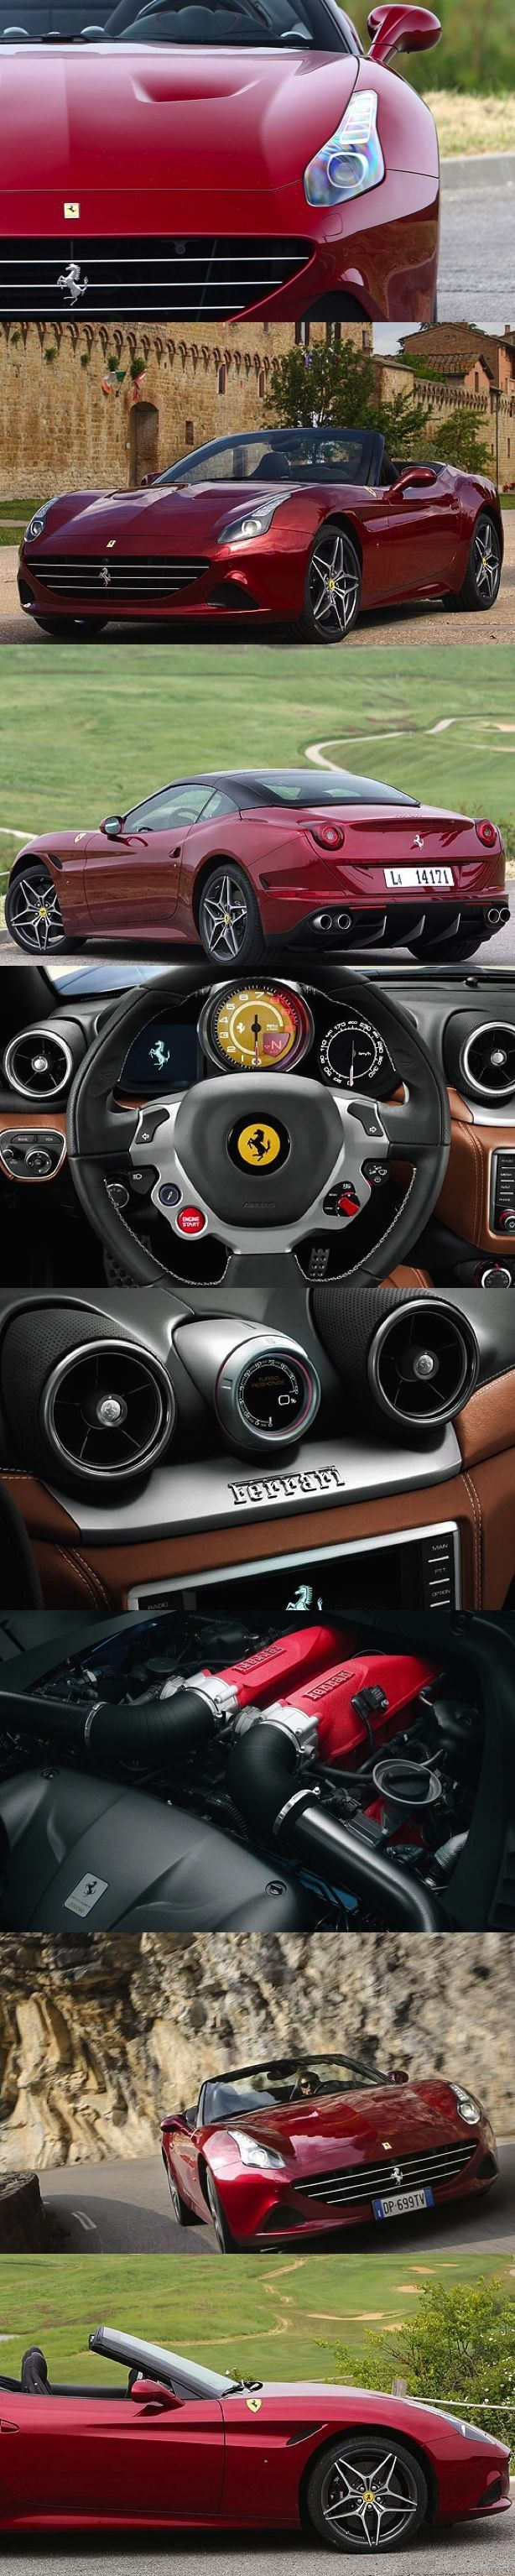 The 10 Best Digital Electronics Images On Pinterest Abu Dhabi Ferrari California Fuse Box Road In T By Tim Barnes Clay Sliding Behind